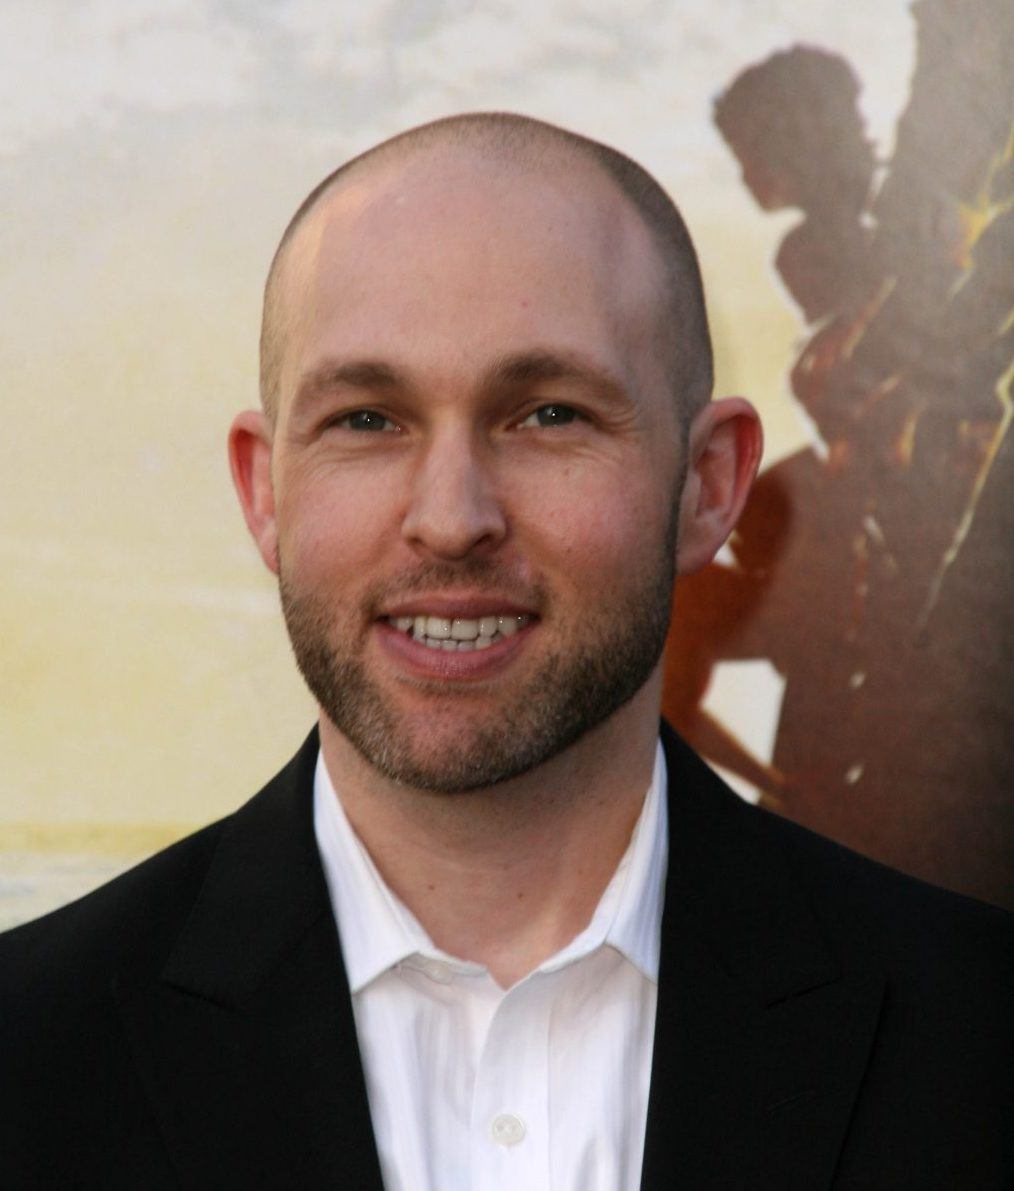 The newly bald Jeff Cohen now